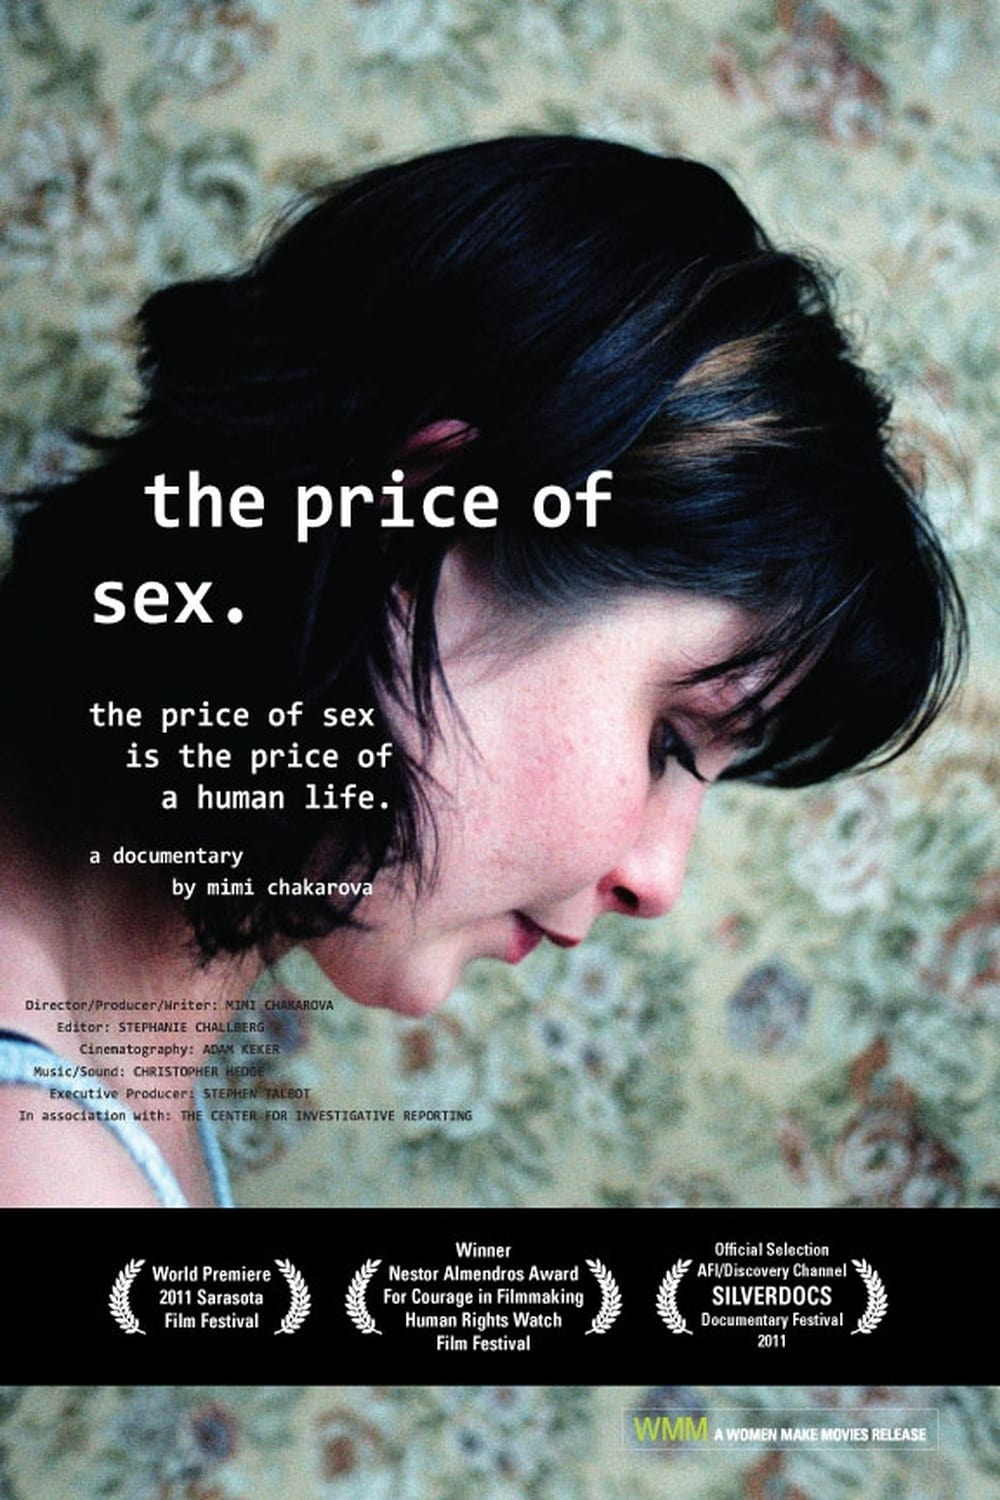 The Price of Sex